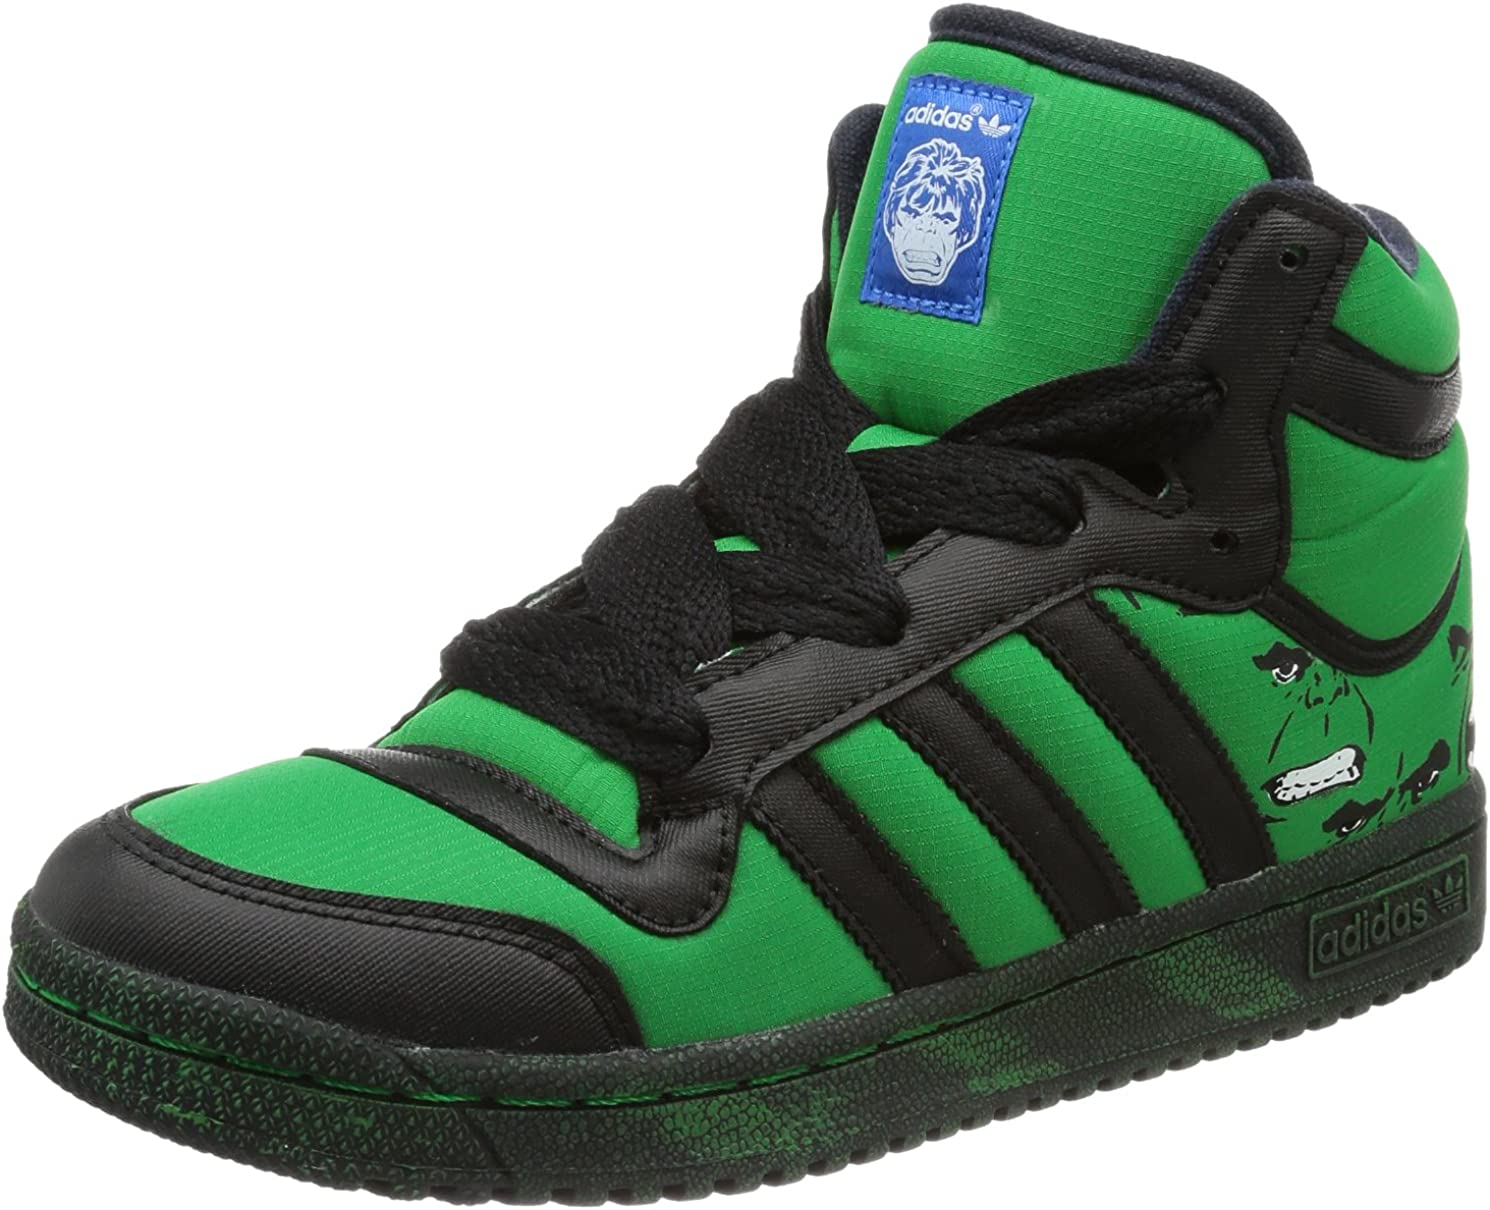 adidas Originals Top Ten Hulk G96049, Jungen Sneaker, Grün